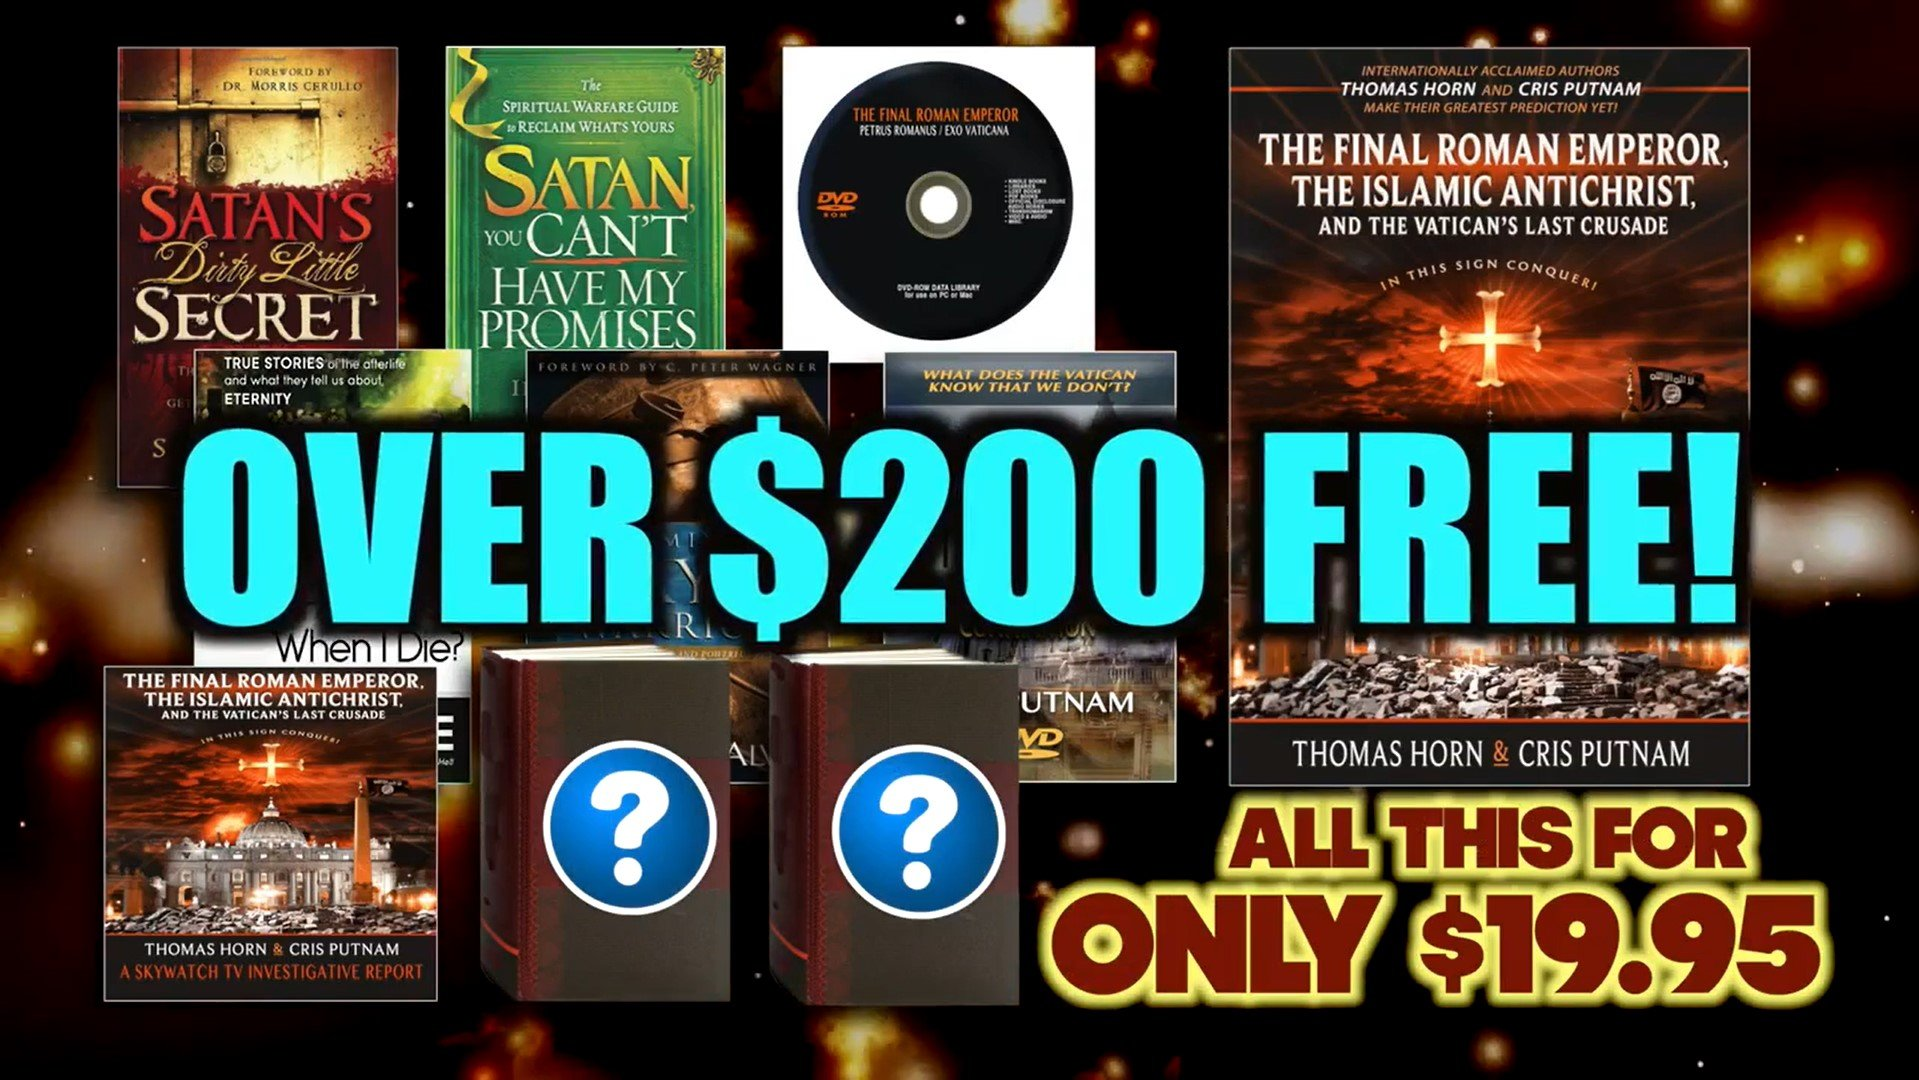 THE BIGGEST GIVEAWAY OF 2016 HAS BEGUN! TO INCLUDE FREE BOOKS, FREE DVDS, FREE DIGITAL LIBRARIES, SECRET WIKI-LEAKS FILES & MORE (WATCH VIDEO)!